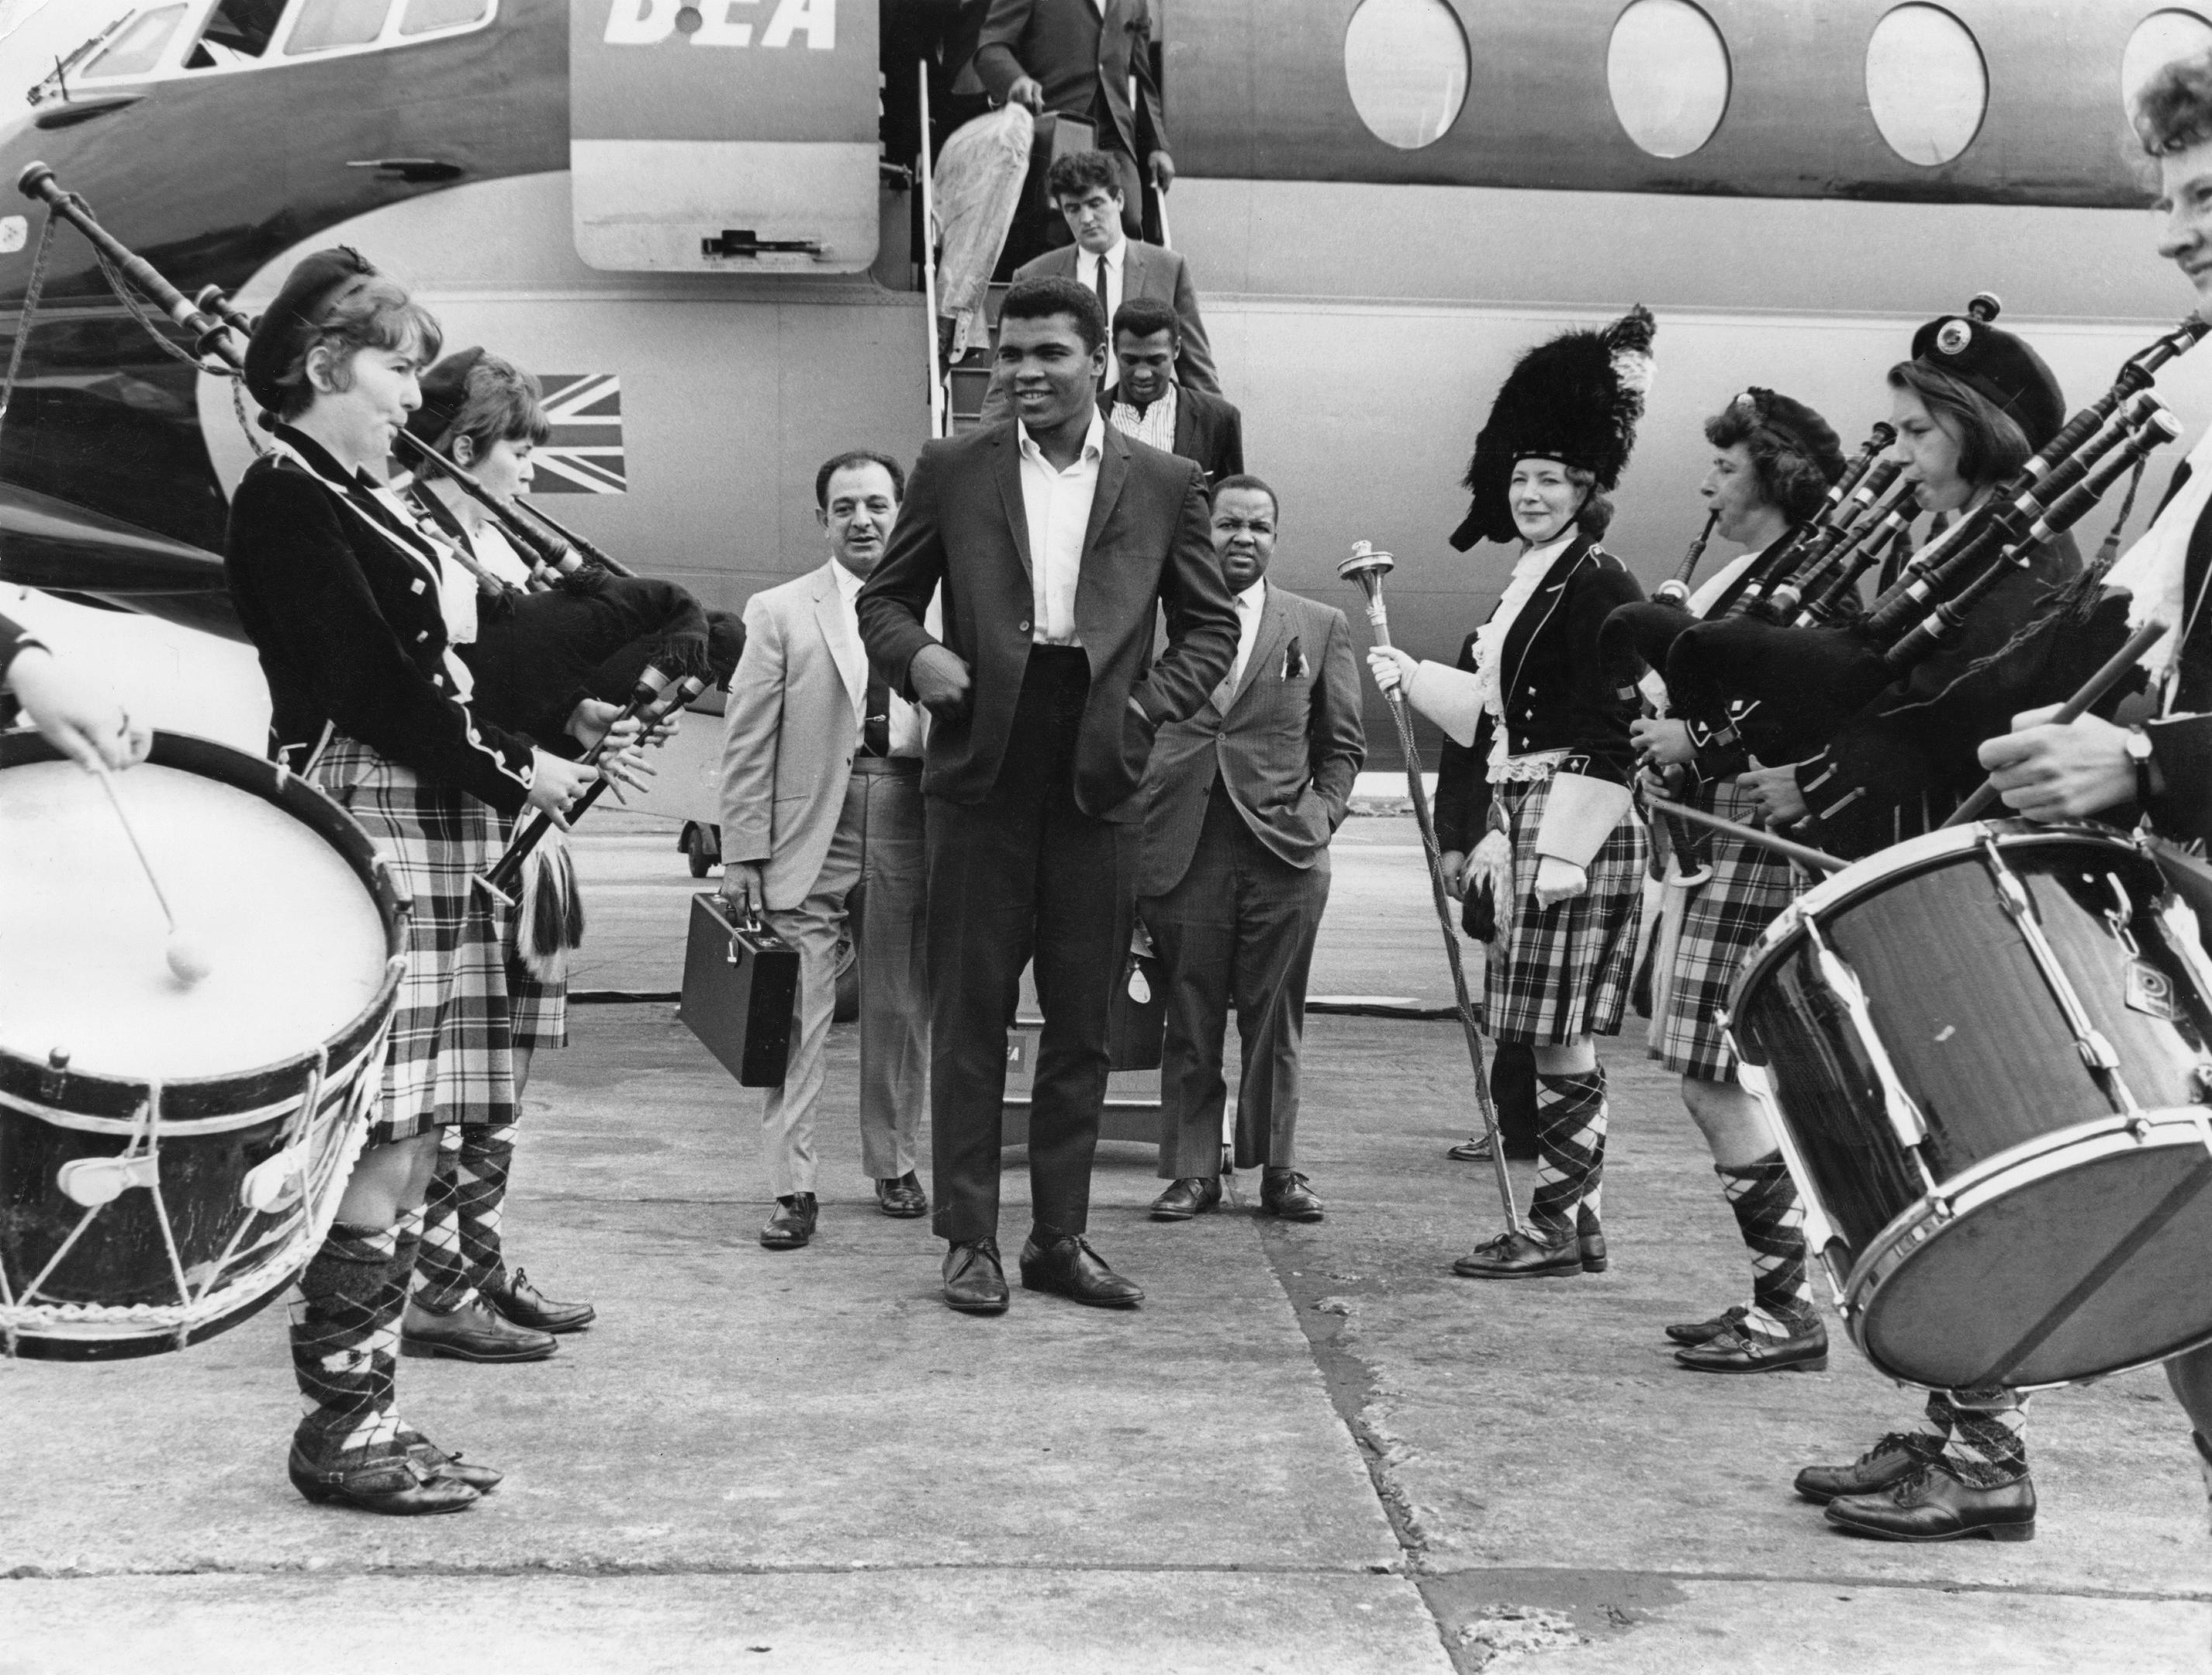 Muhammad Ali is greeted by a traditional Scottish pipe band on his arrival at Glasgow Airport, 18th August 1965 (Daily Express/Pictorial Parade/Archive Photos/Getty Images)